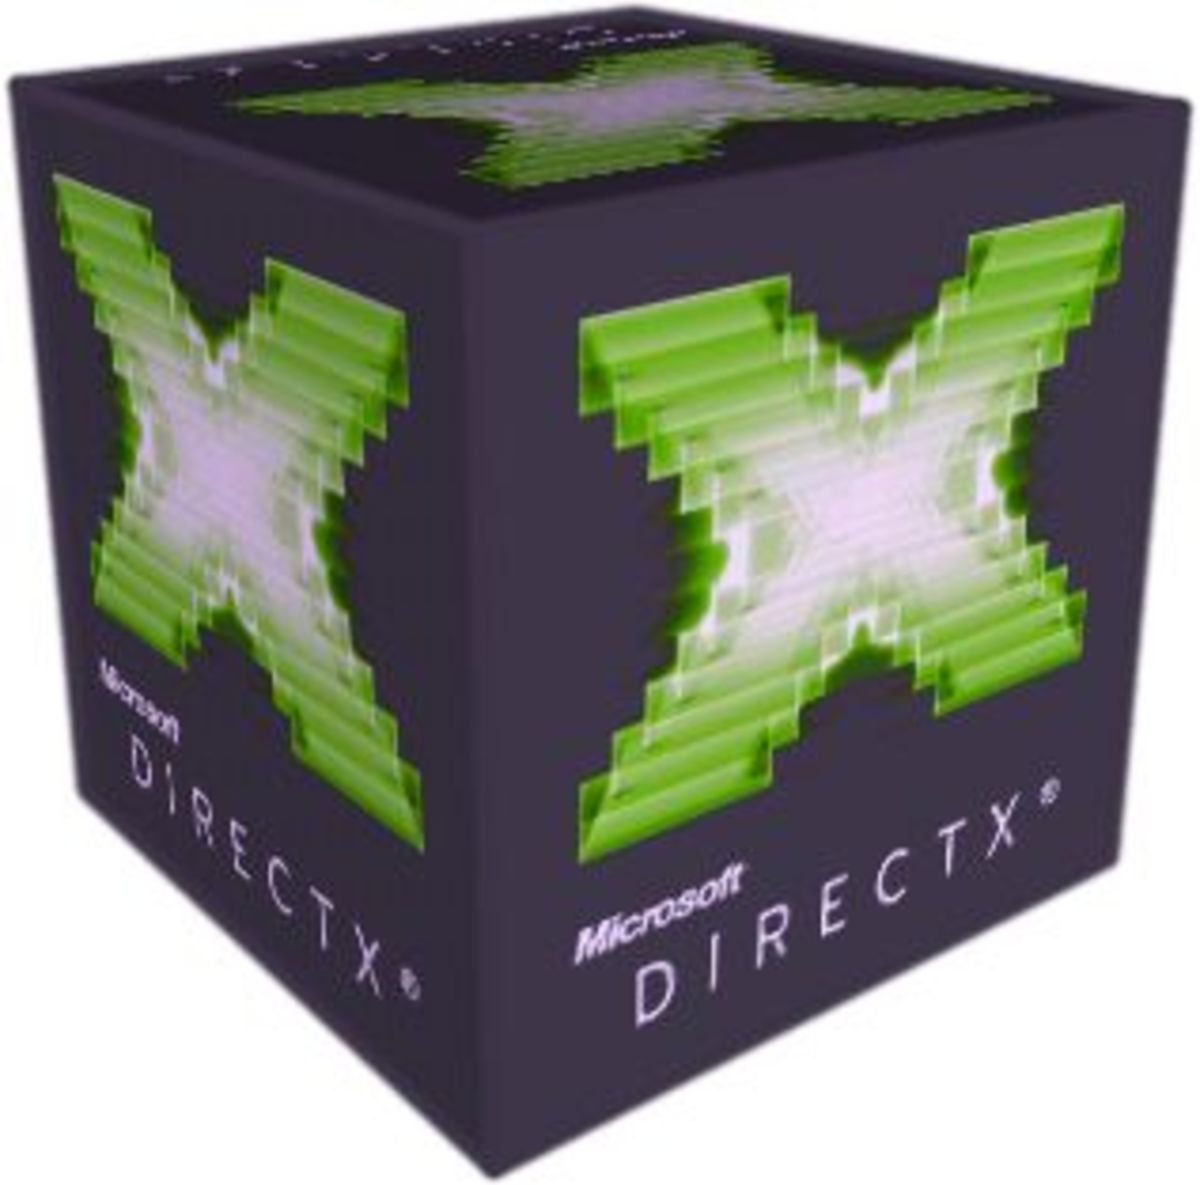 What Is DirectX? How Does DirectX Work?